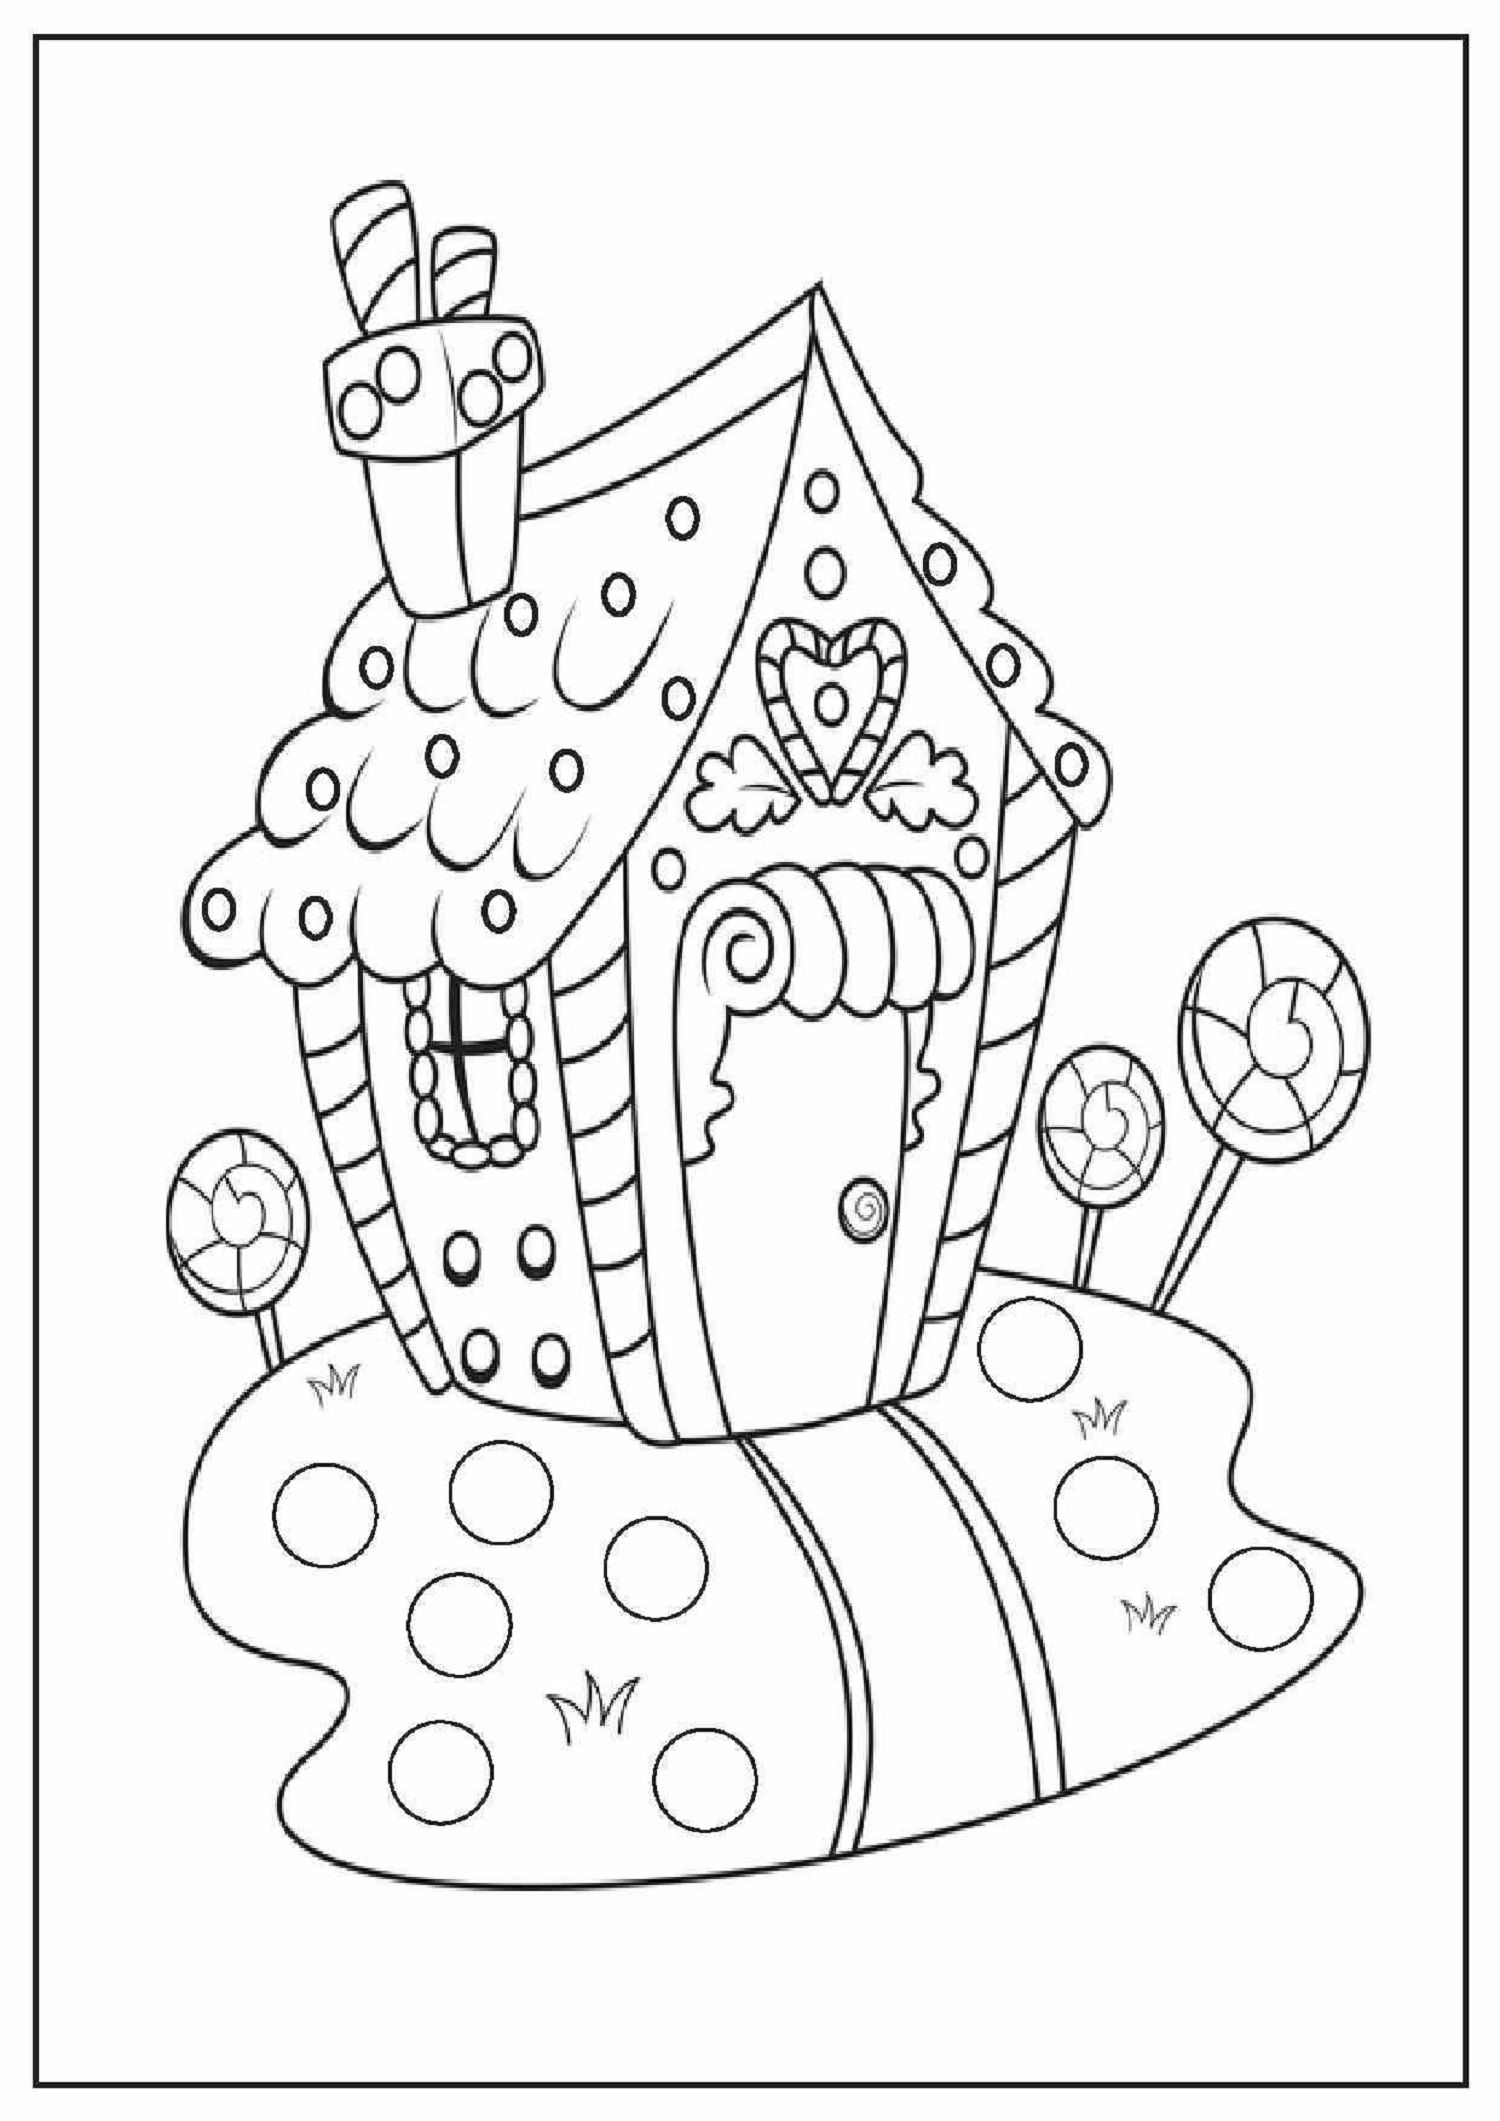 Christmas Colouring Pages Kindergarten With Activities For Kids Fun Activity Coloring